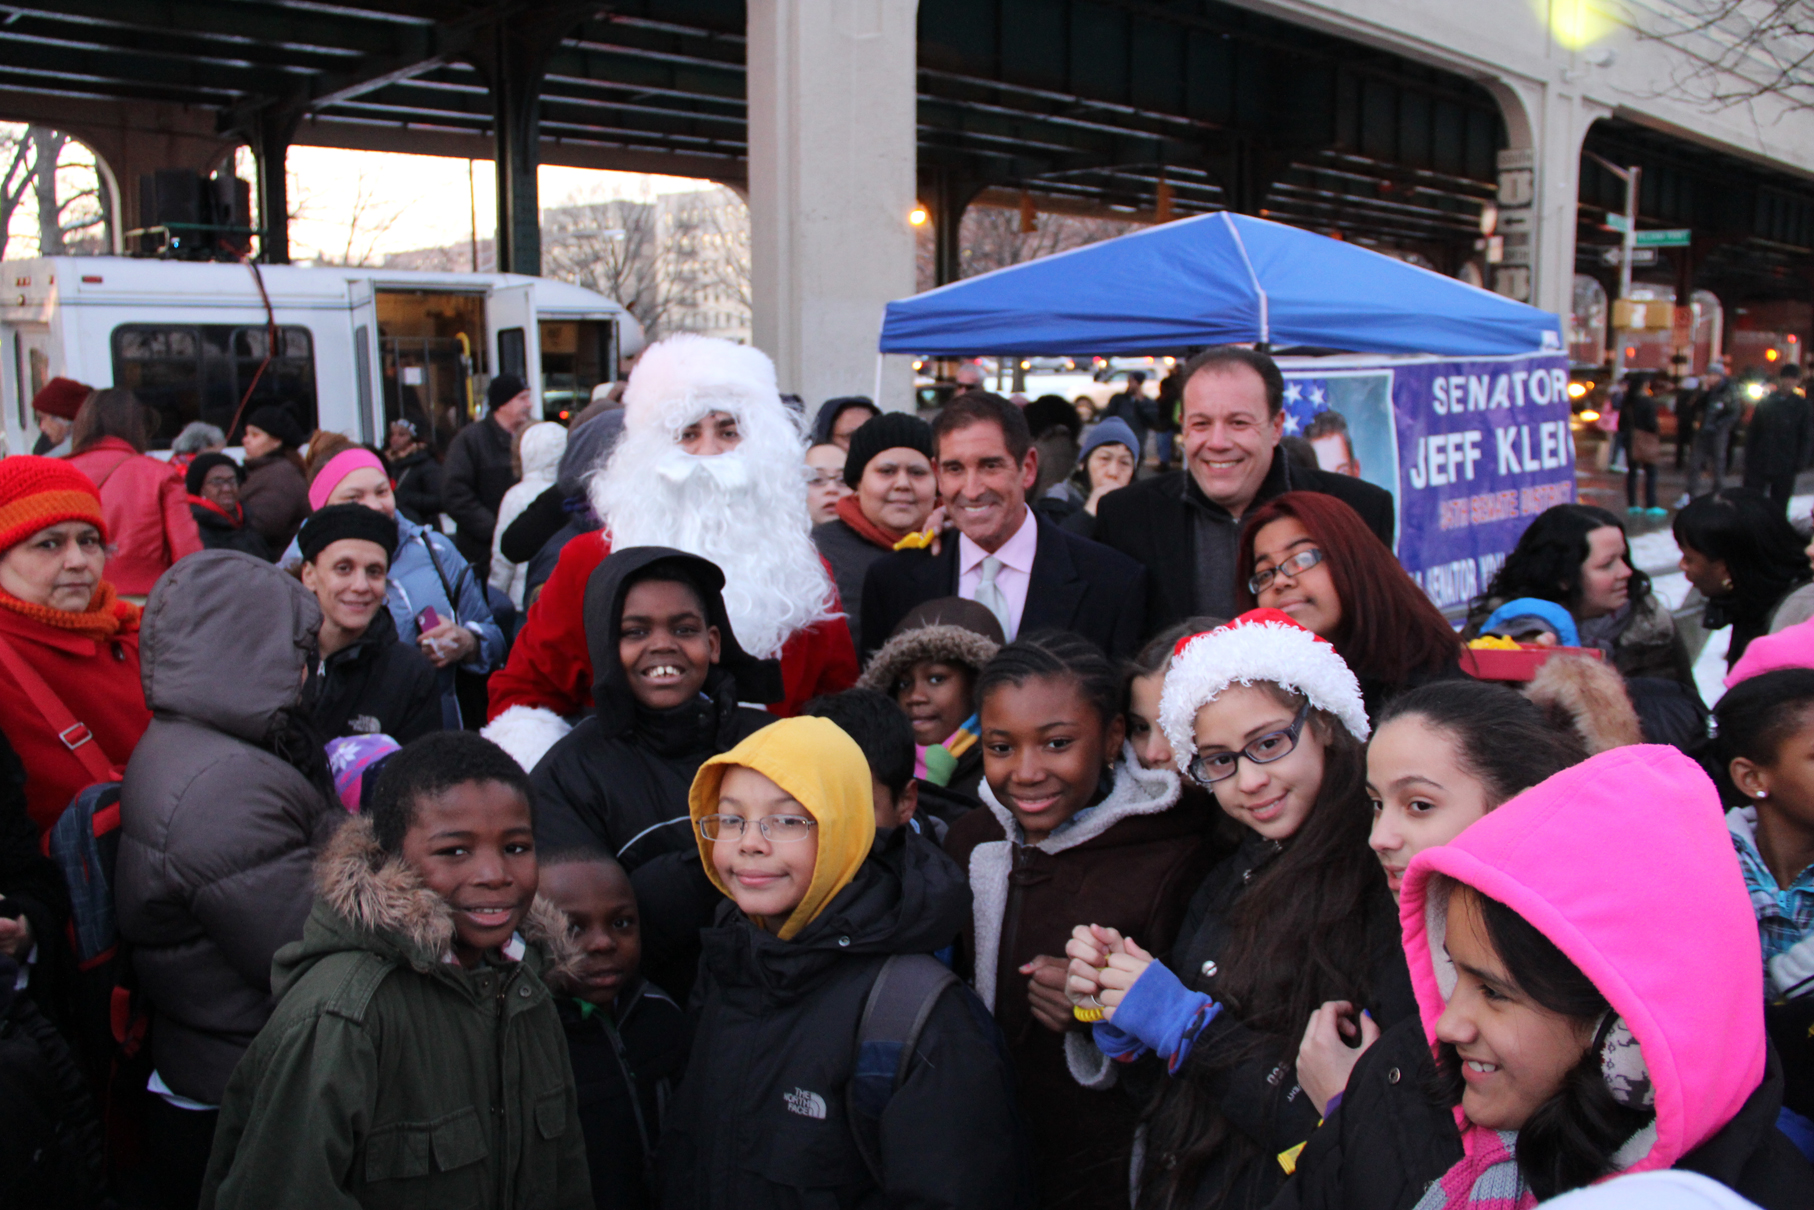 Santa, Jeff Klein and Mark Gjonaj host Pelham Bay Park Christmas Tree Lighting